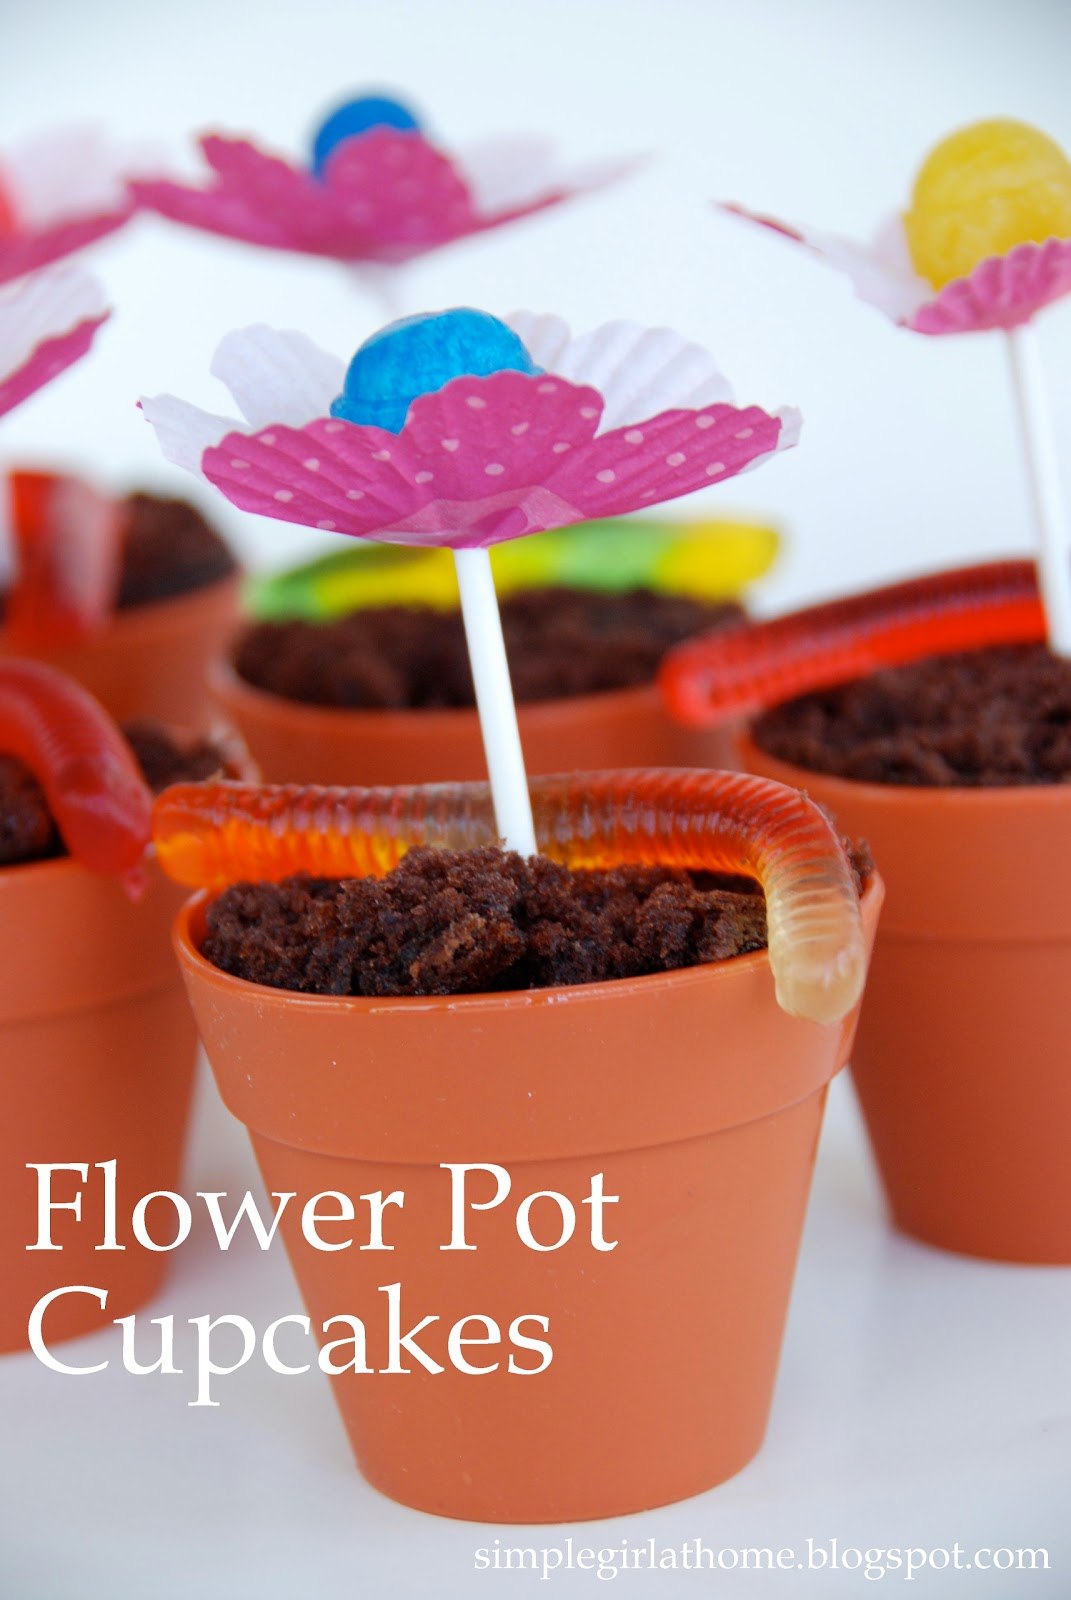 How To Make Beautiful Flower Pots At Home Simple Girl Flower Pot Cupcakes